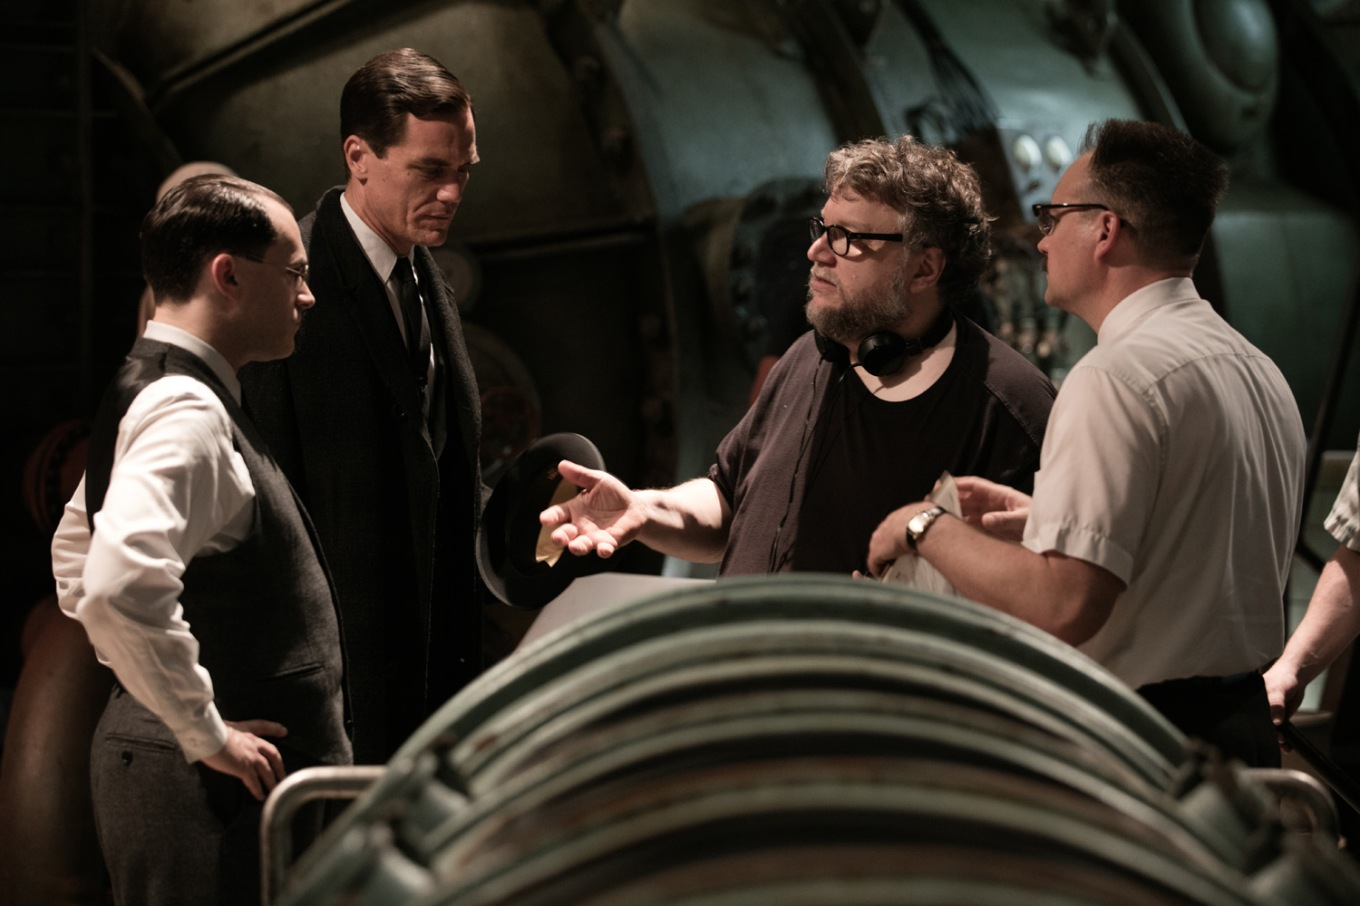 the-shape-of-water-guillermo-del-toro.jpg